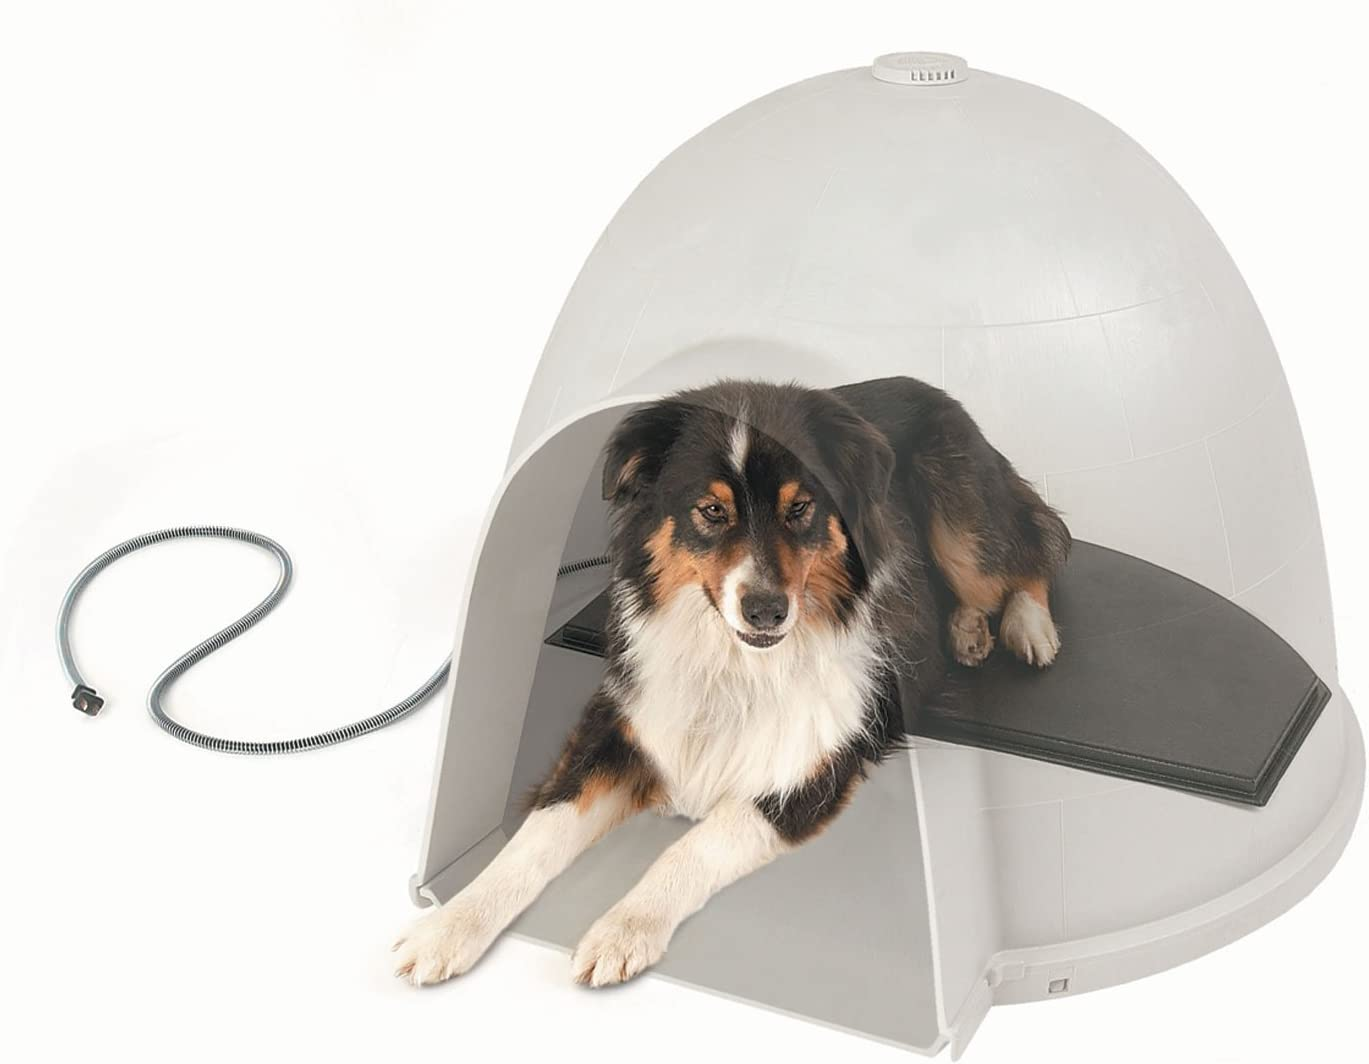 K H Pet Products Lectro-Kennel Igloo Style Outdoor Heated Pad Black – MET Safety Listed